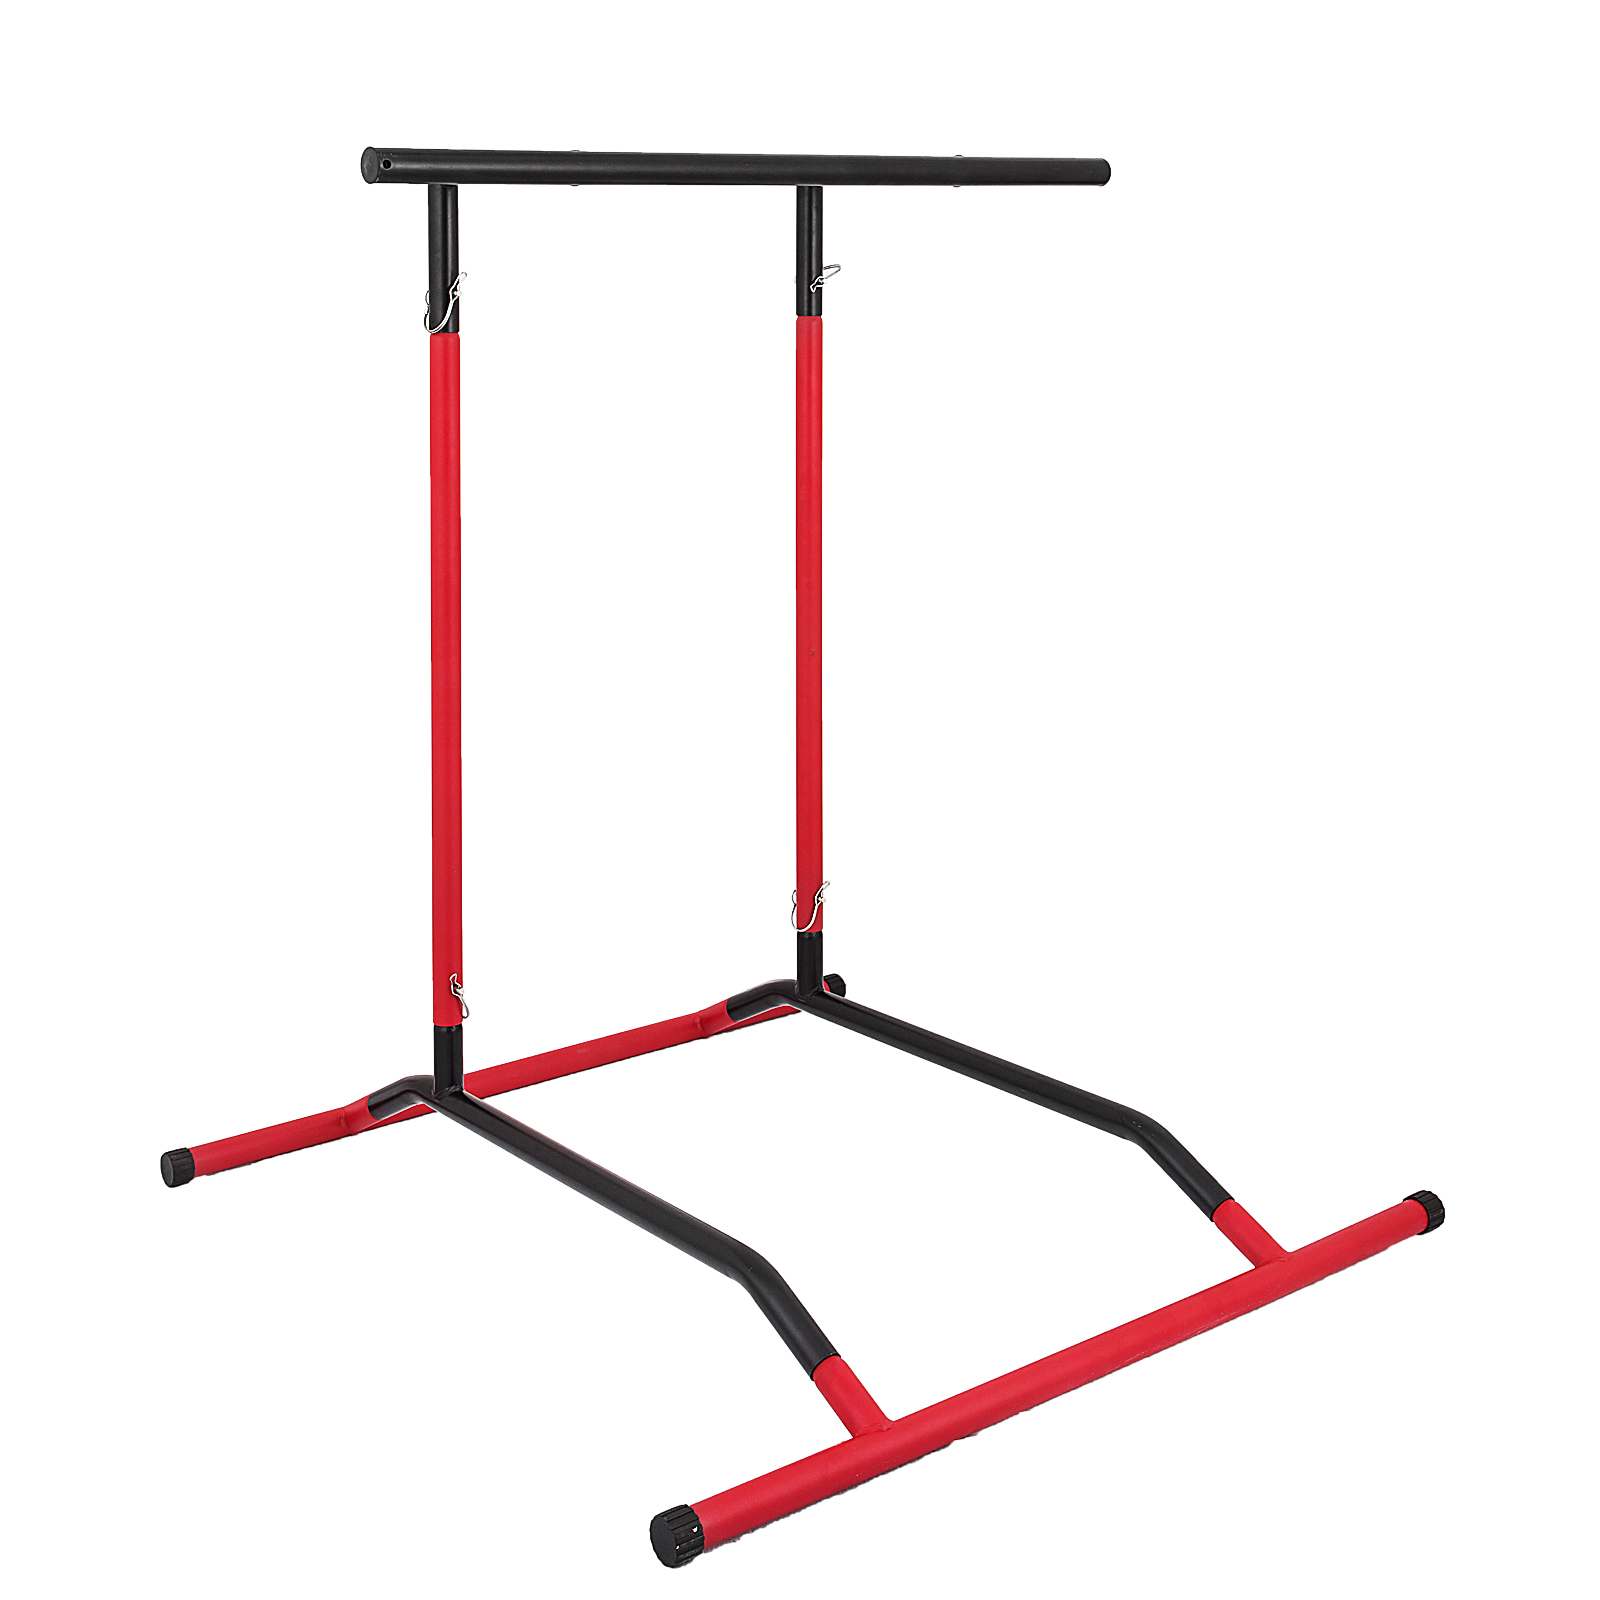 Portable-Power-Tower-for-Home-Gym-Workout-With-Dip-Station-And-Chin-Pull-Up-Bar thumbnail 27